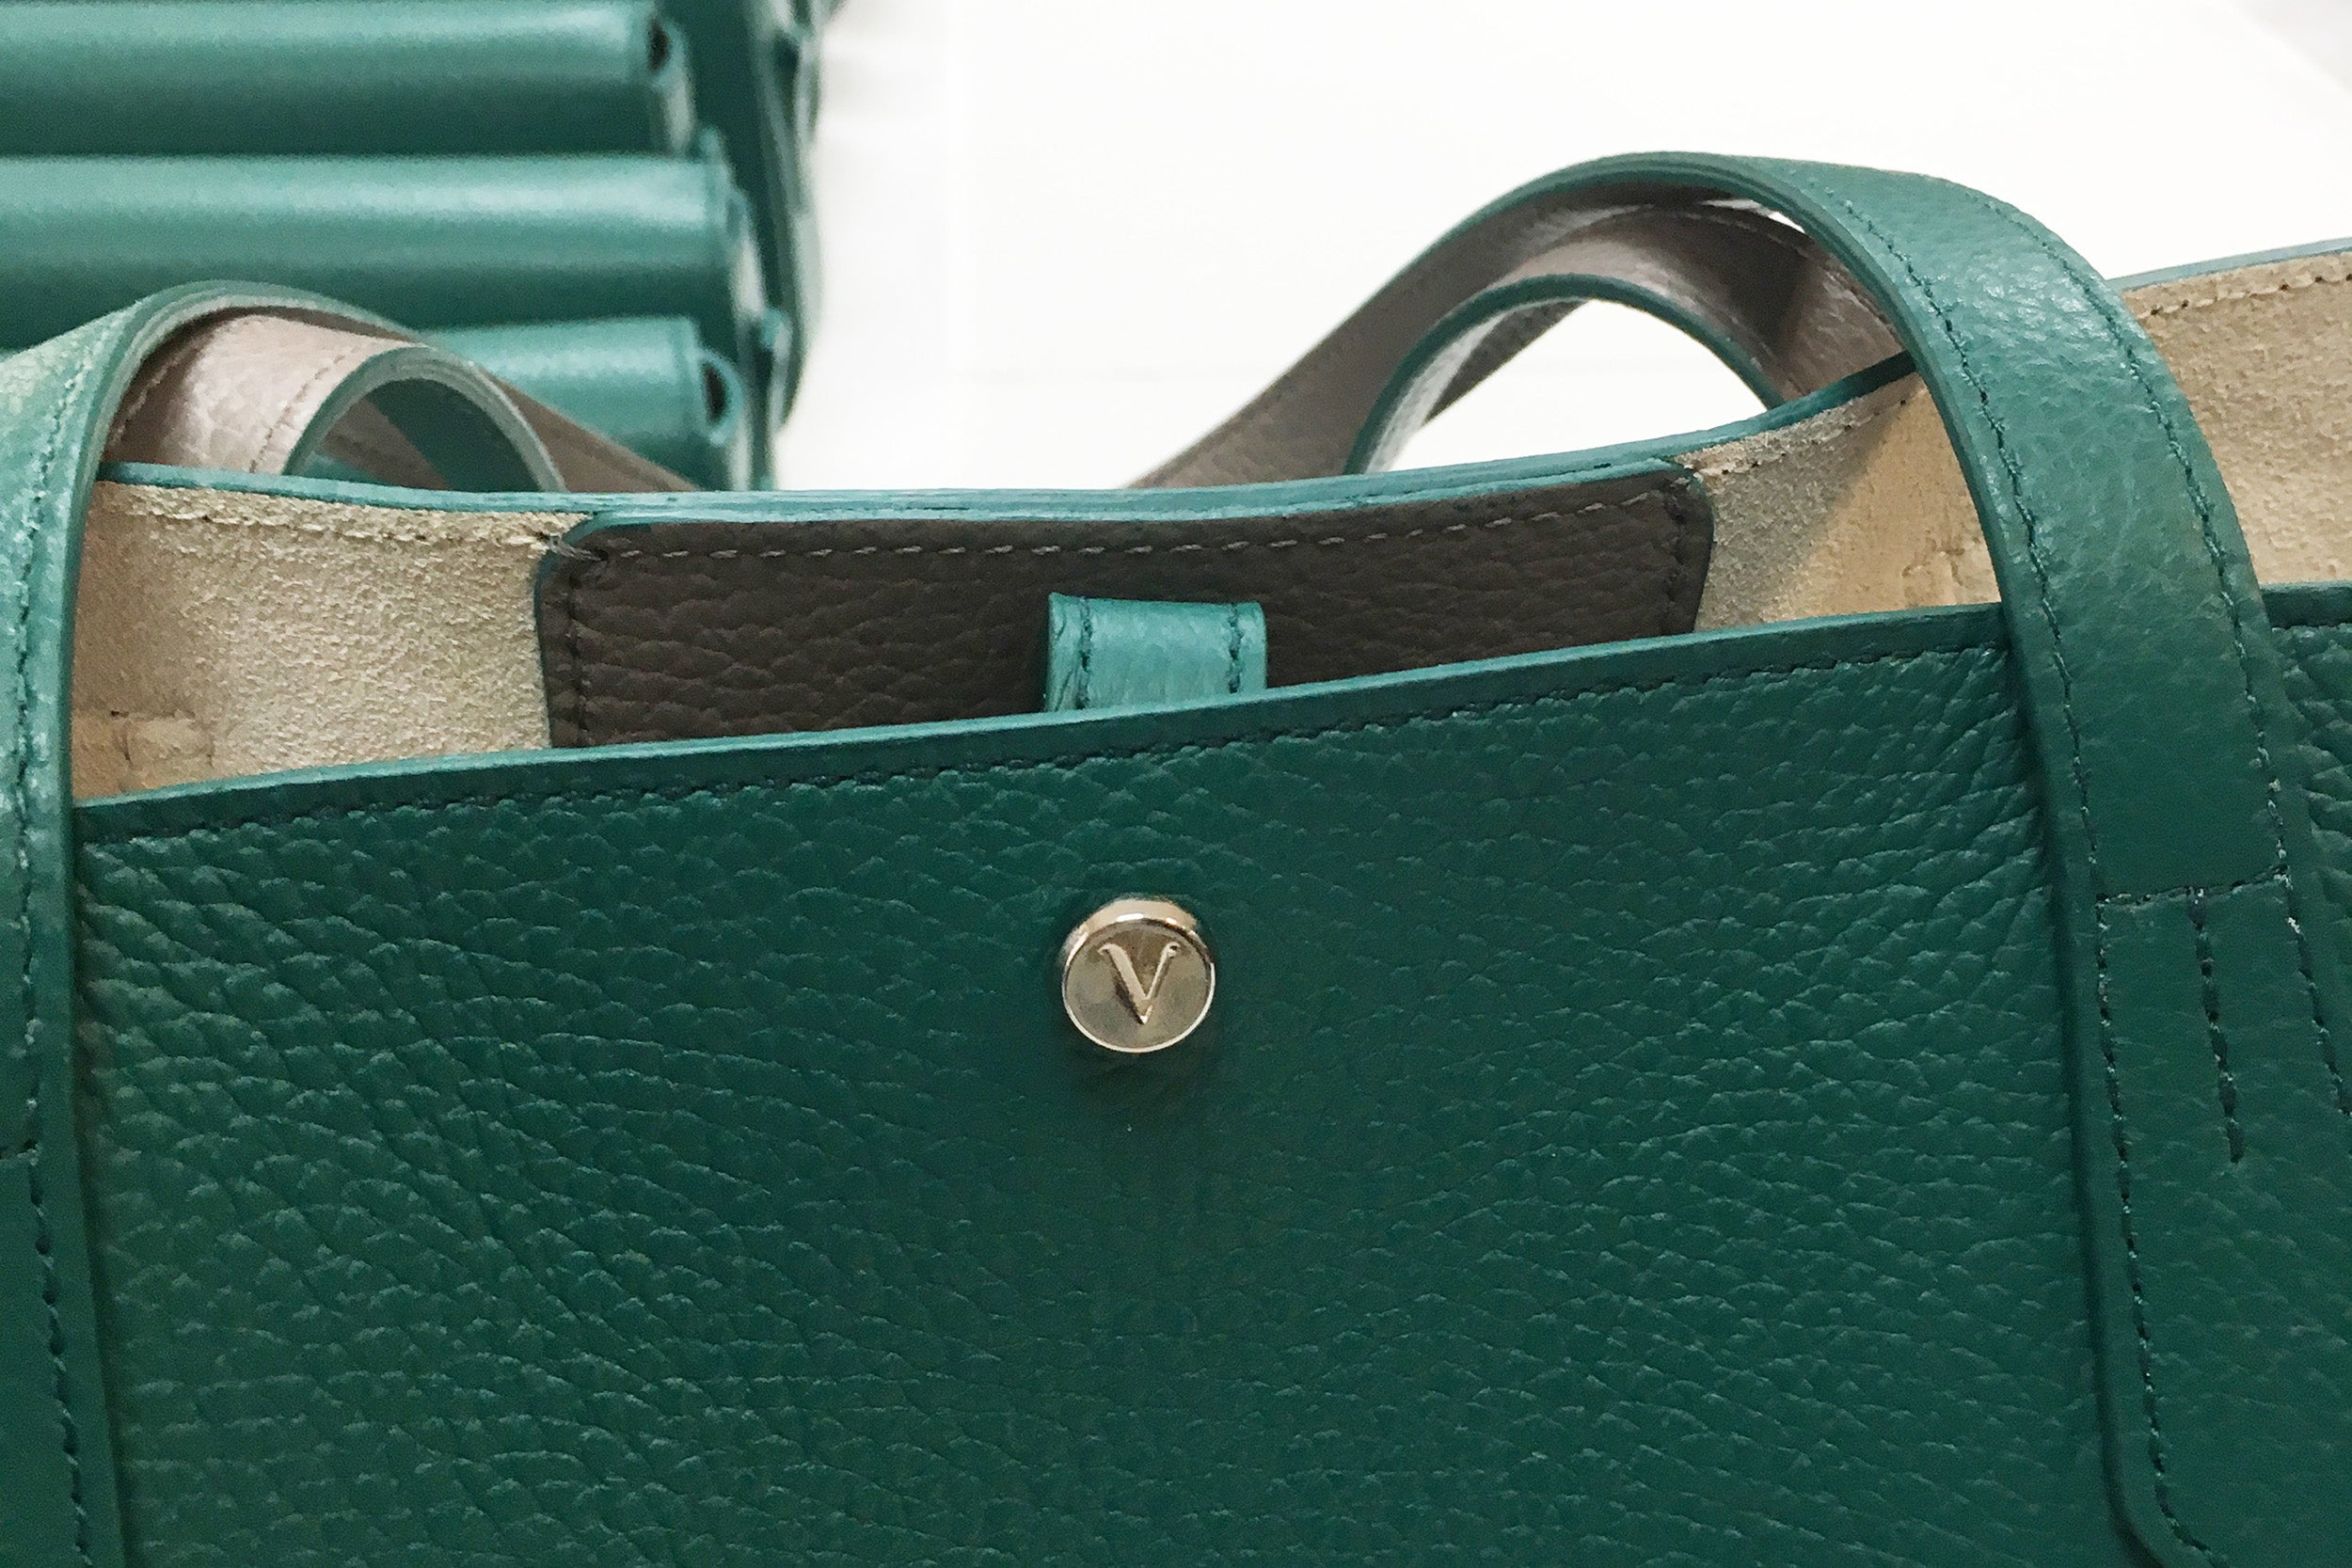 Green Julia Tote Bag from Verlein